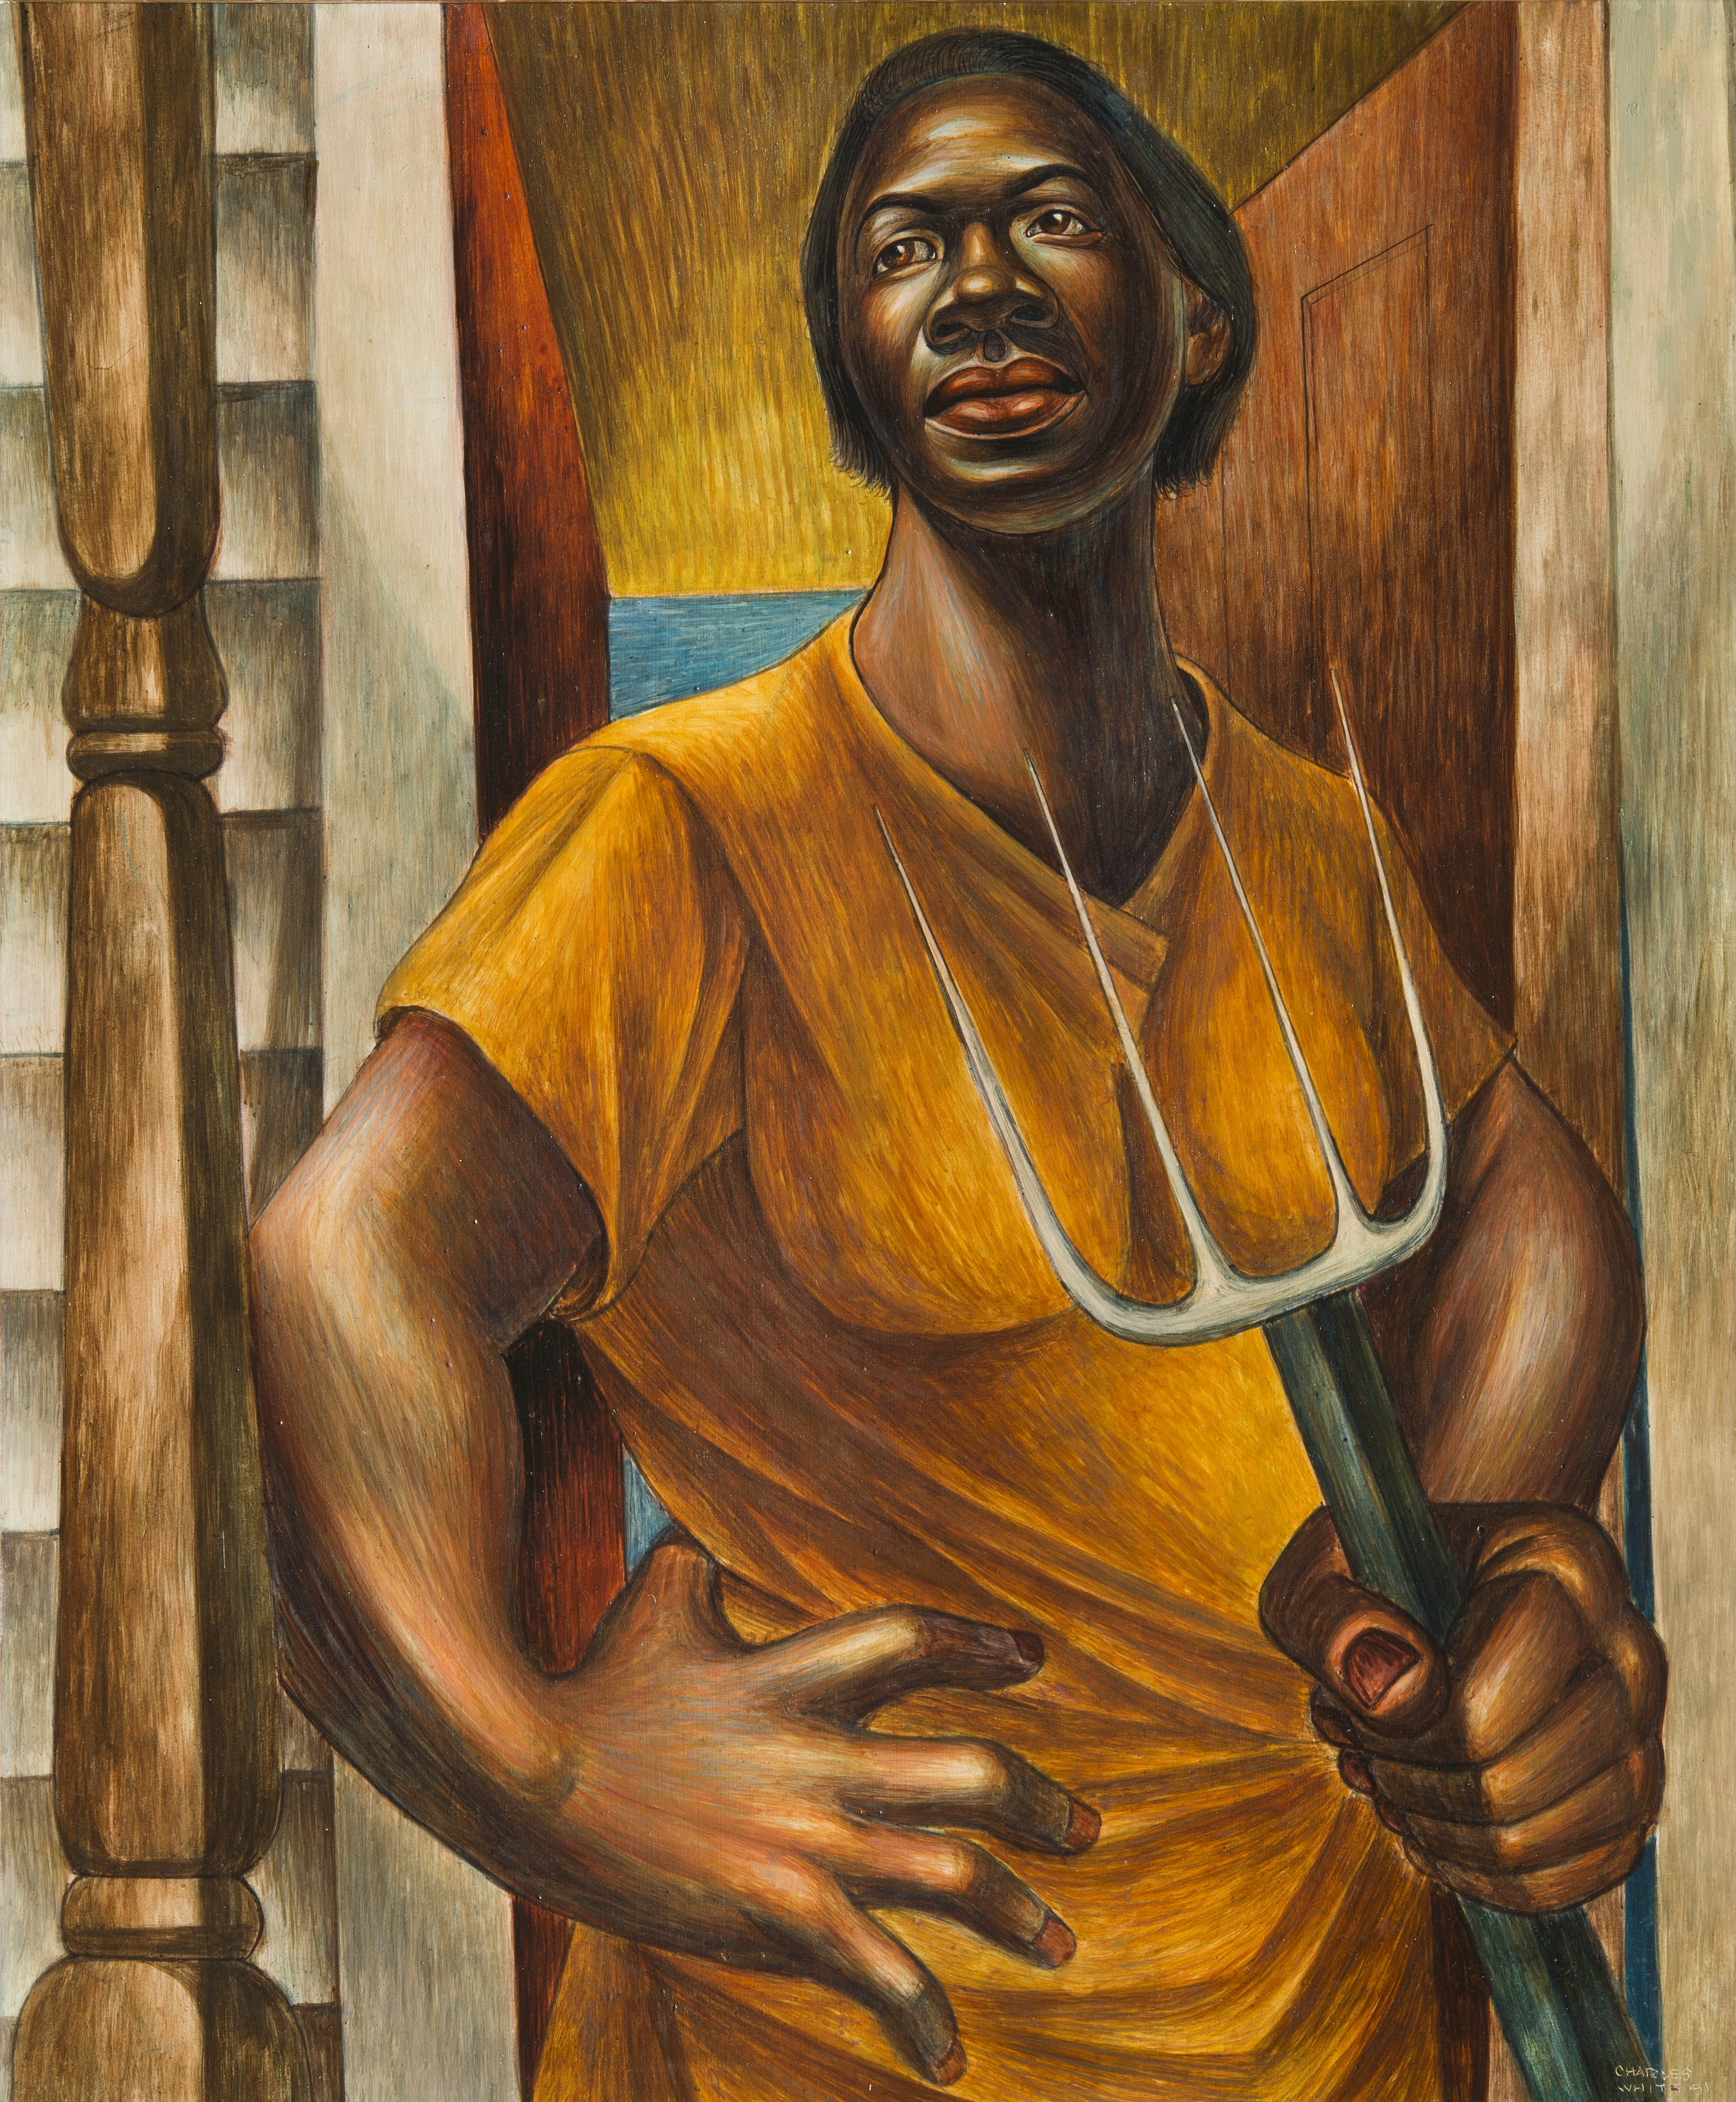 Our Land - Charles White